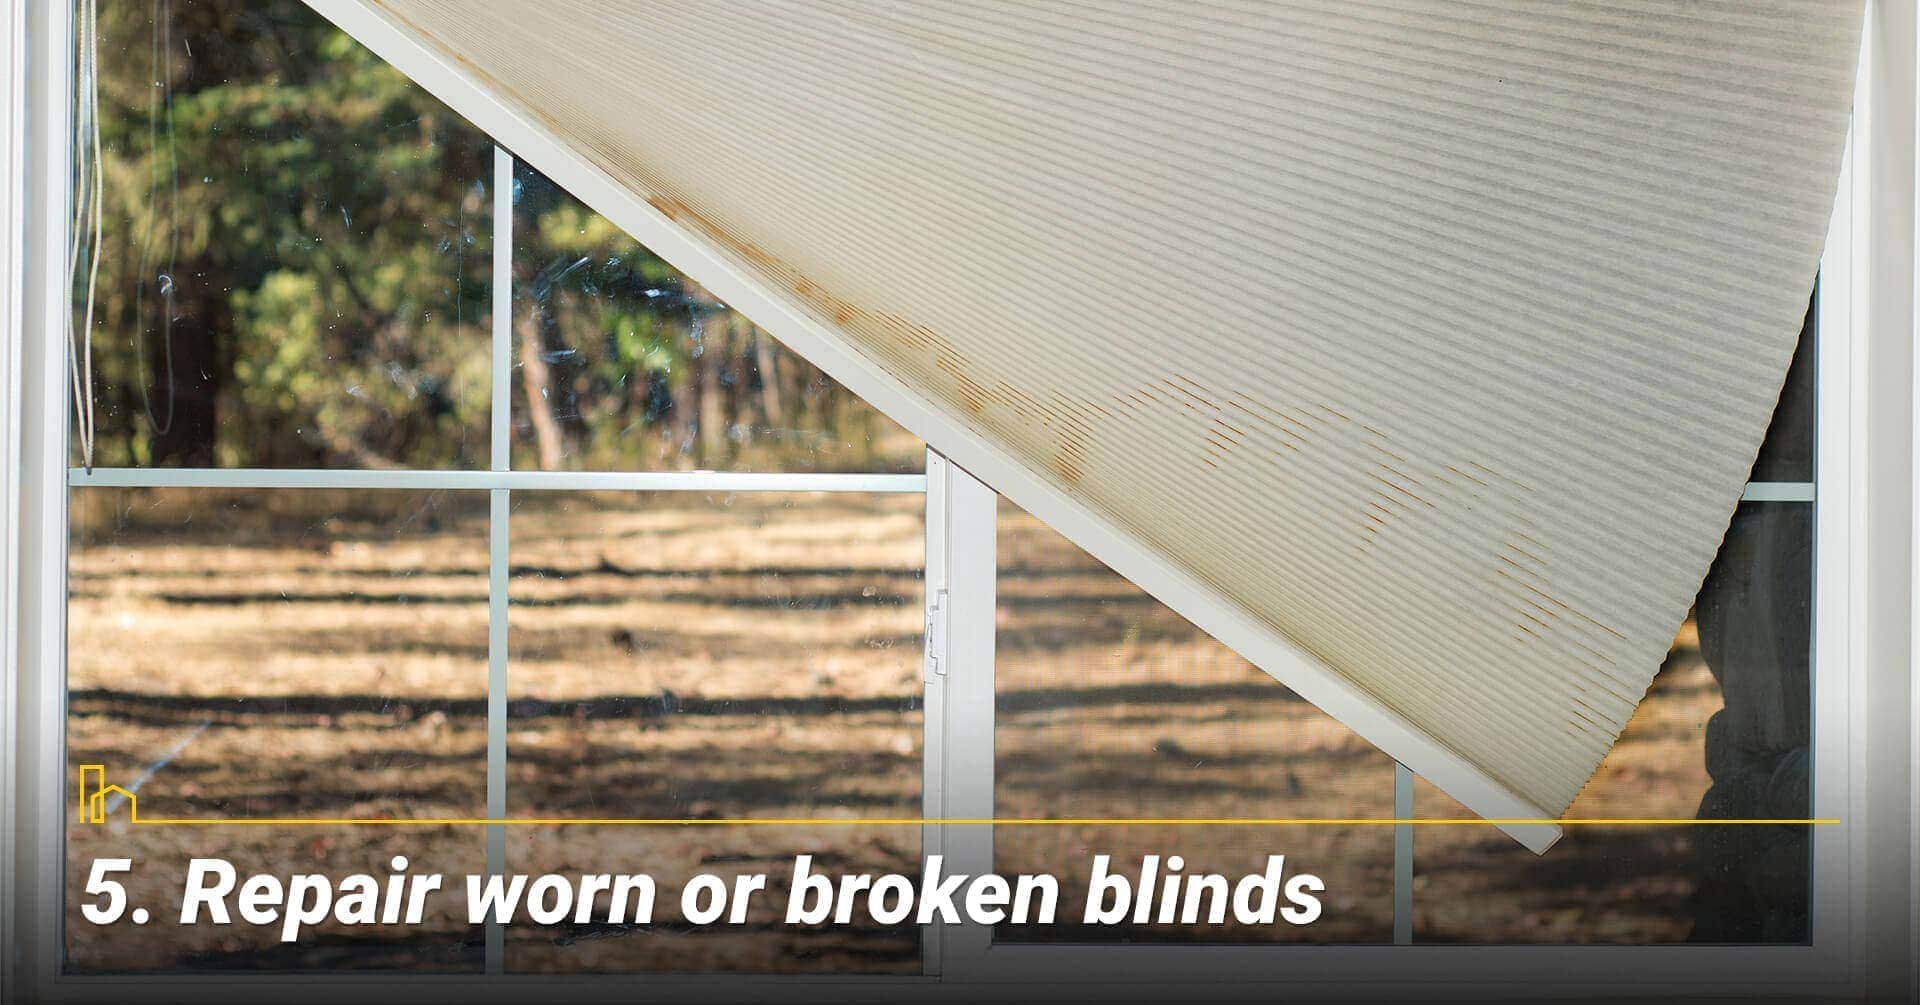 Repair worn or broken blinds, fix broken items around the house